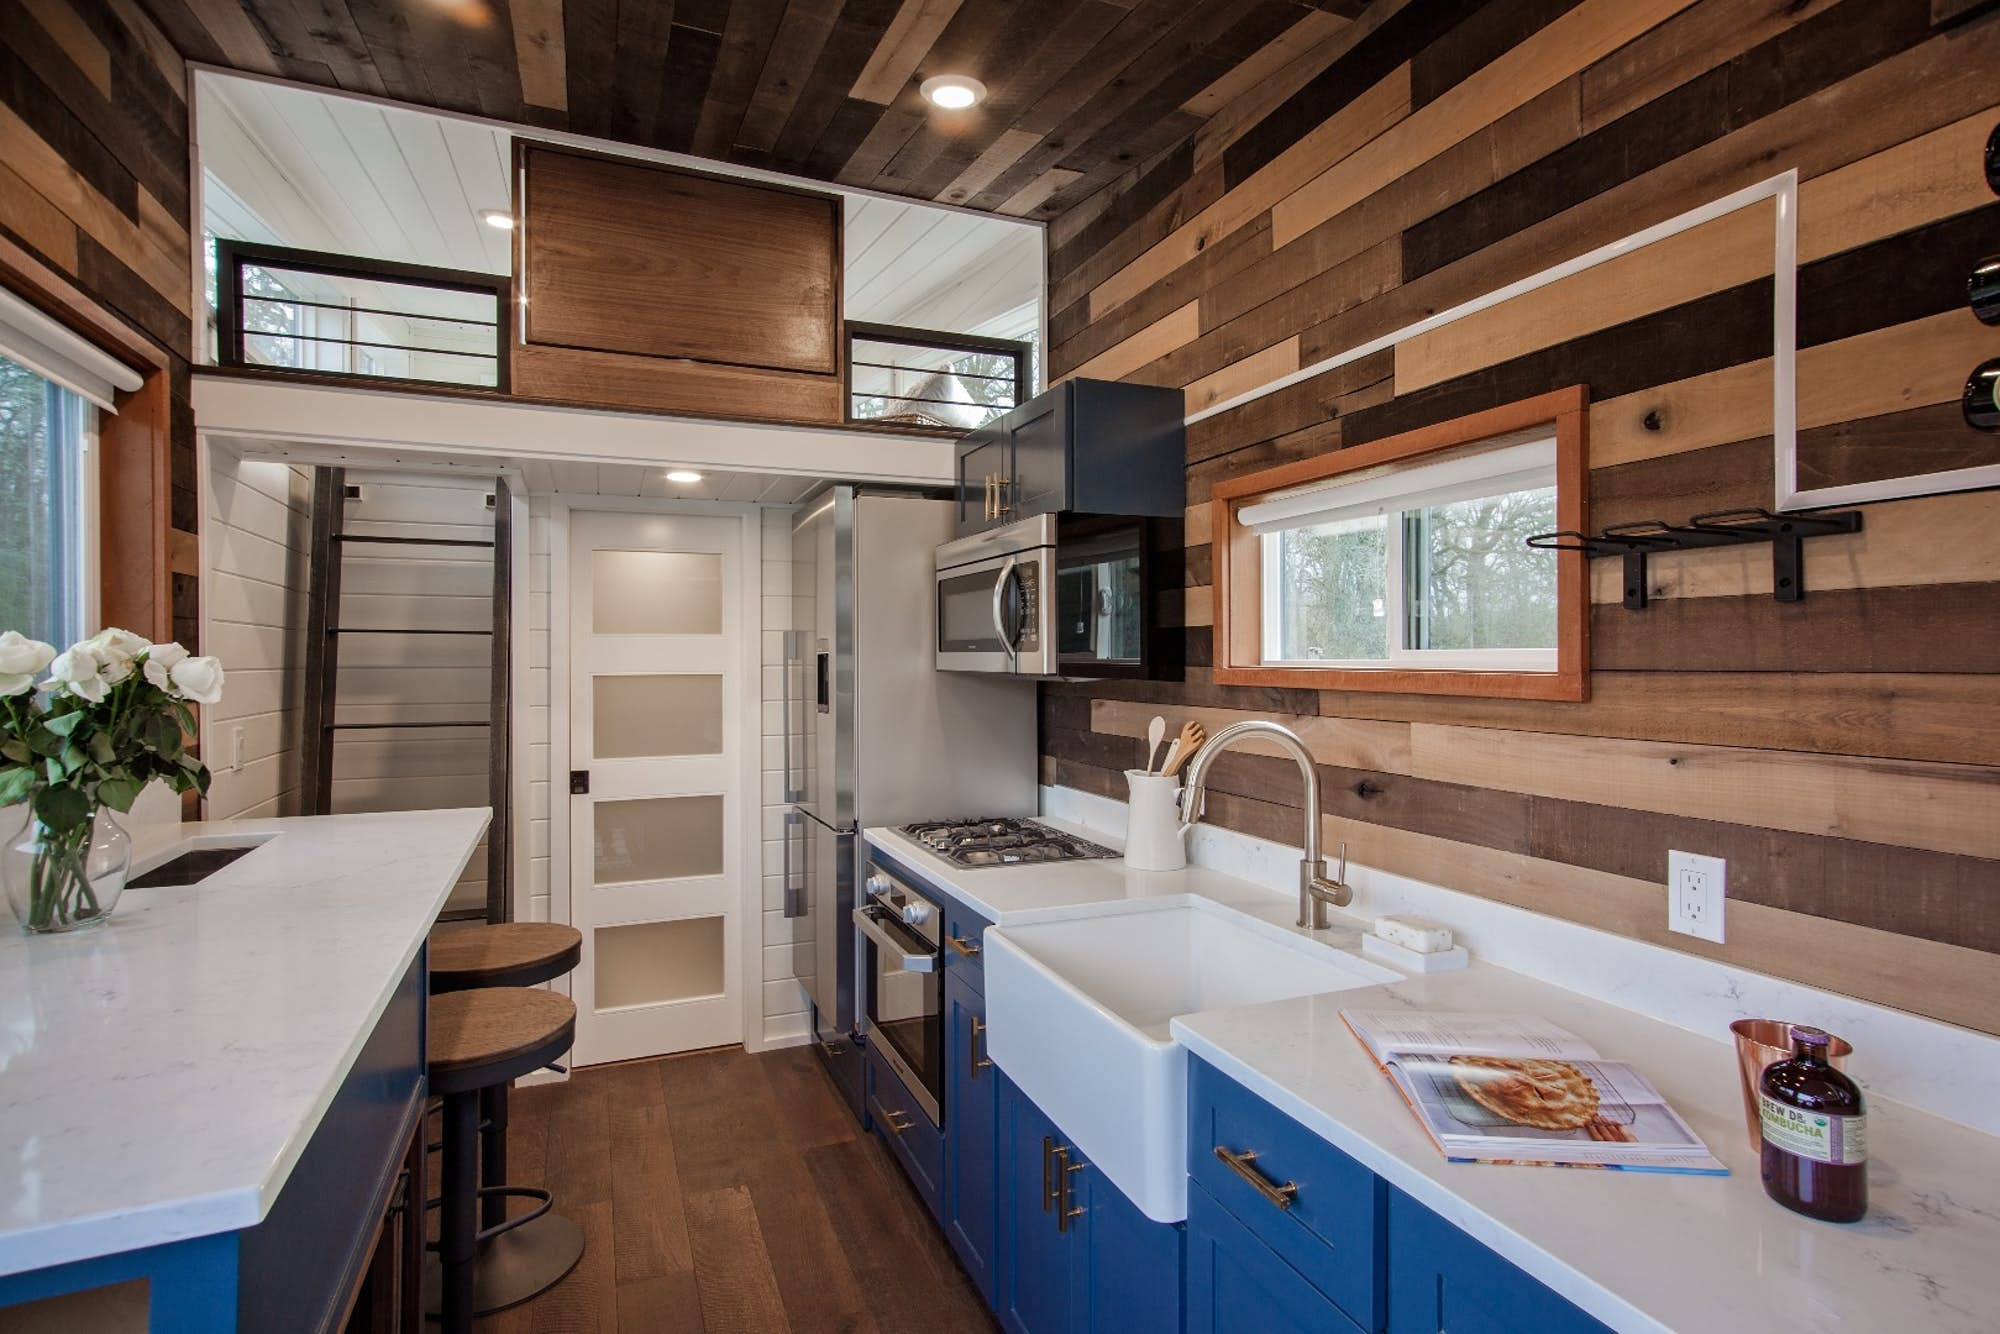 Breezy tiny house was designed for throwing parties